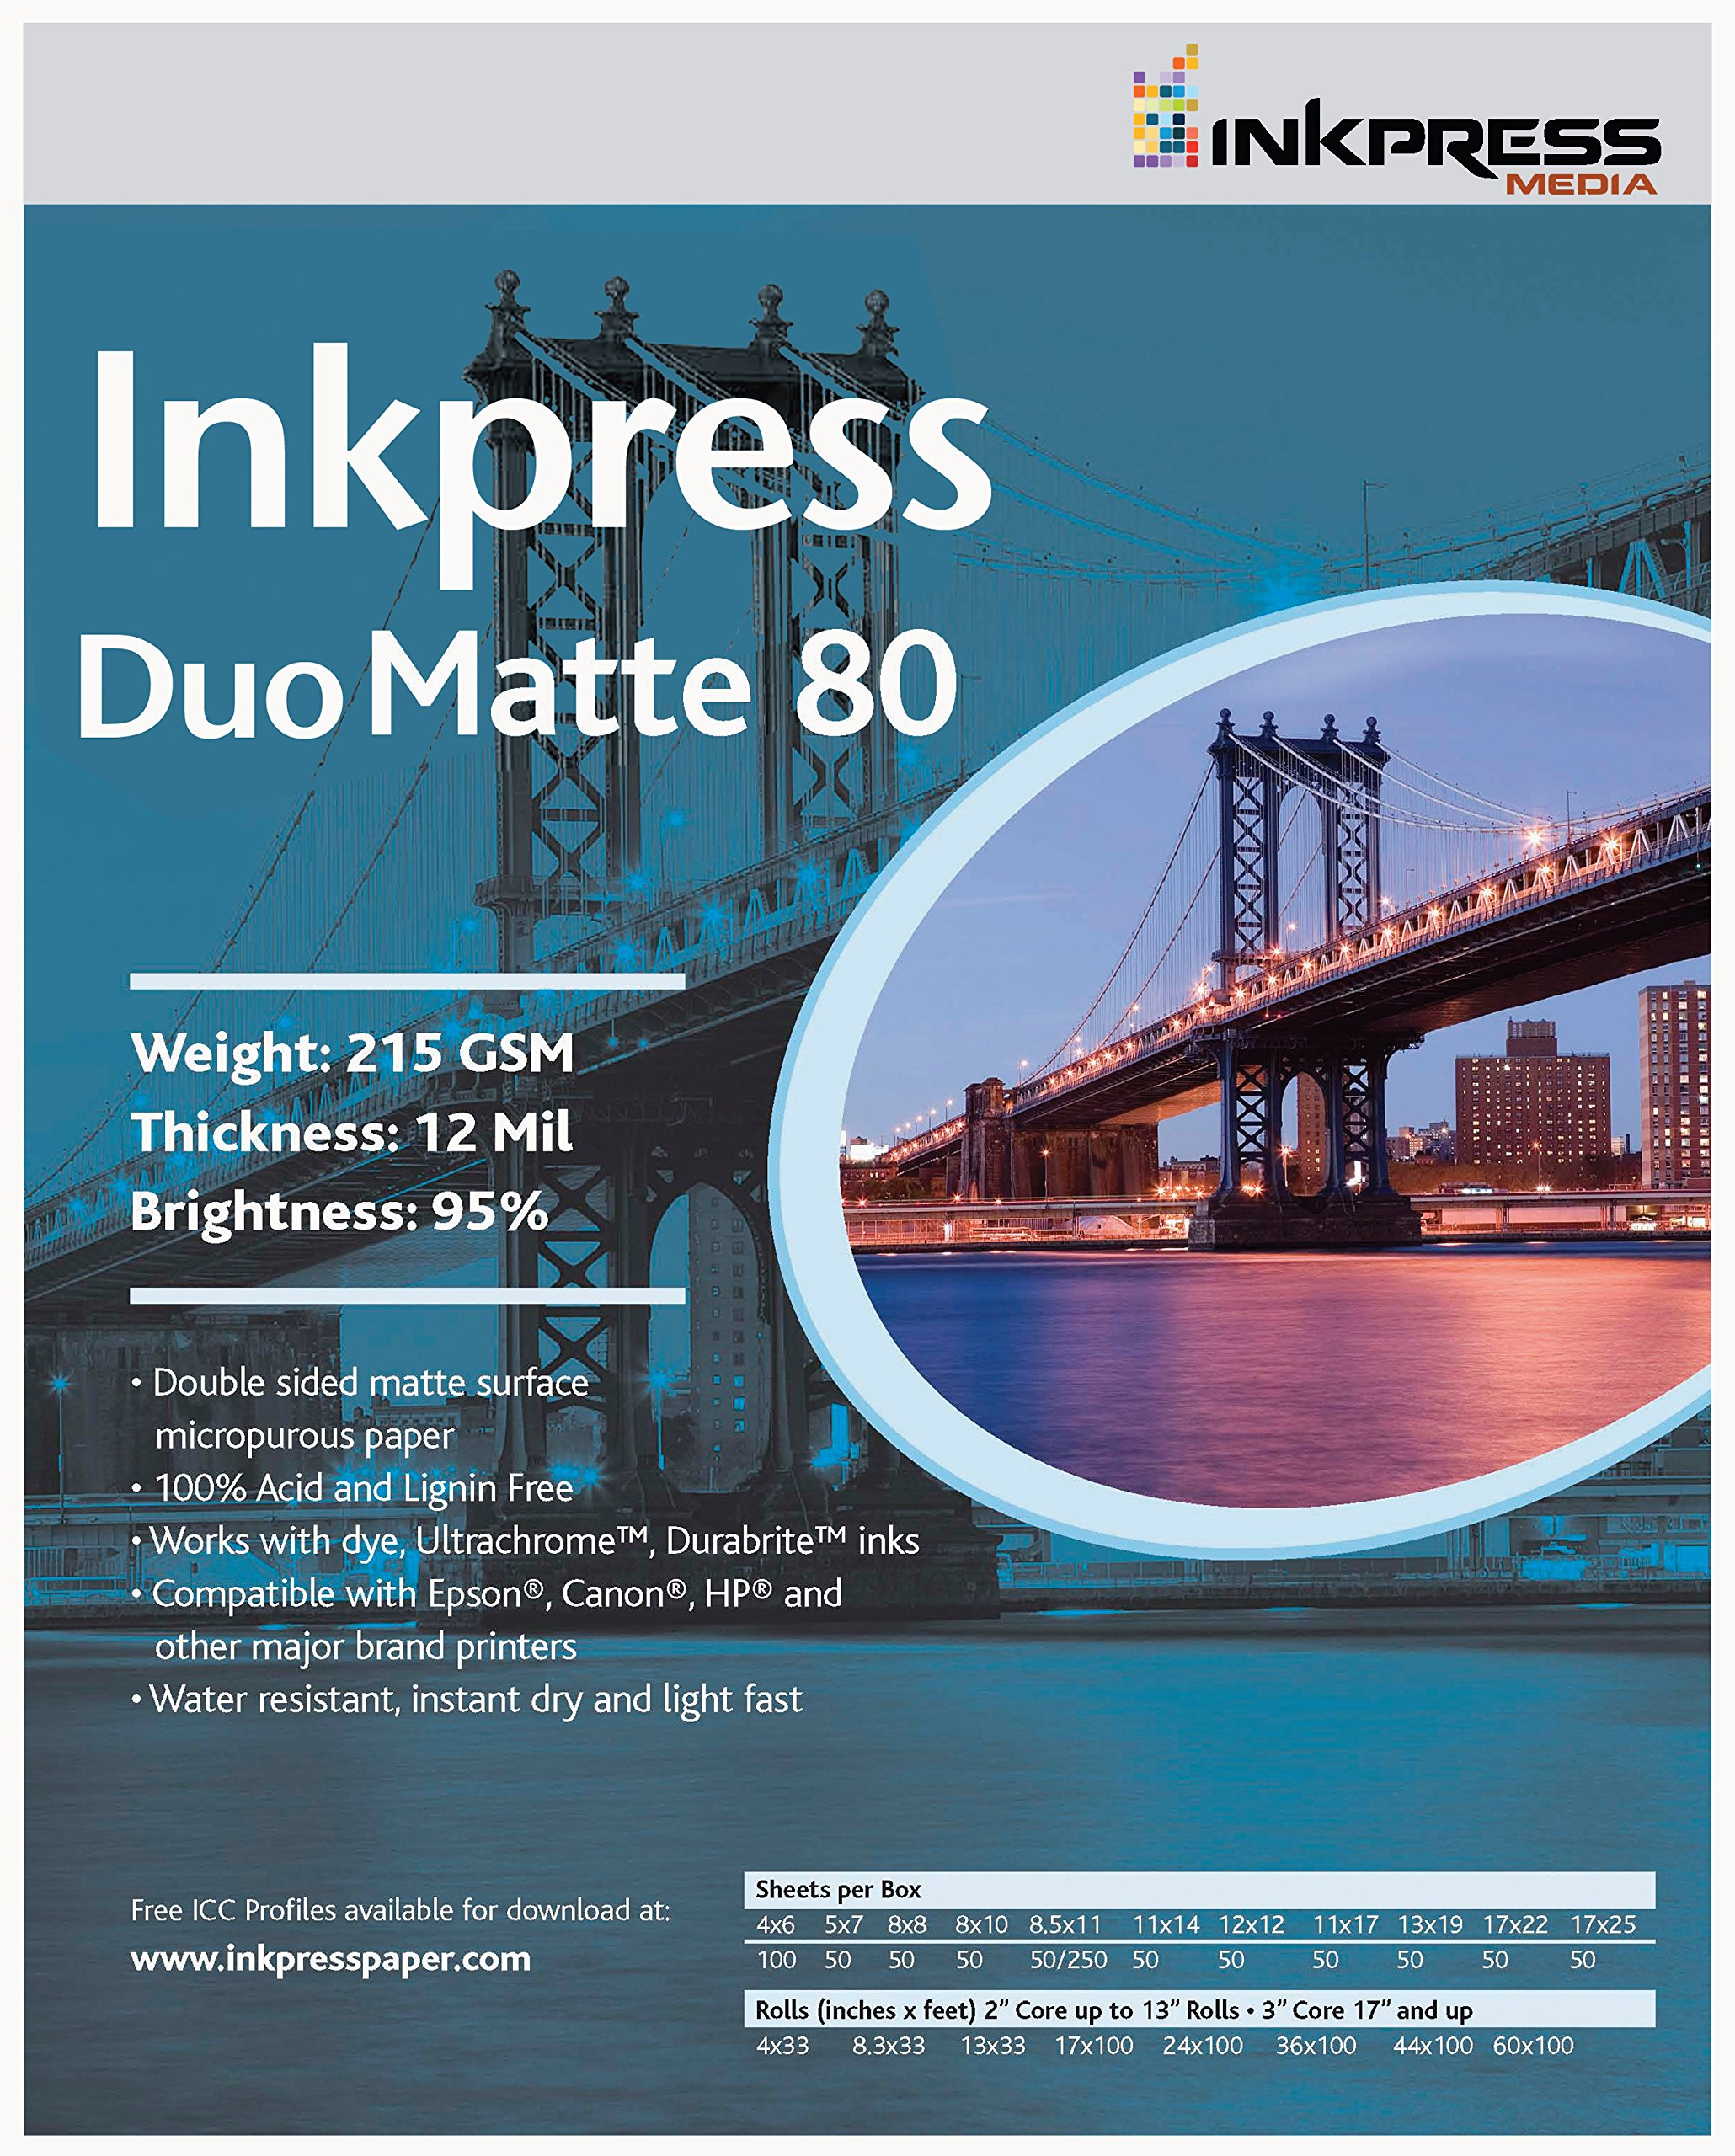 INKPRESS MEDIA 215 GSM,12 Mil,5x7'', 95 Percent Bright, Double Sided Photo Paper (#PP805750) by INKPRESS MEDIA